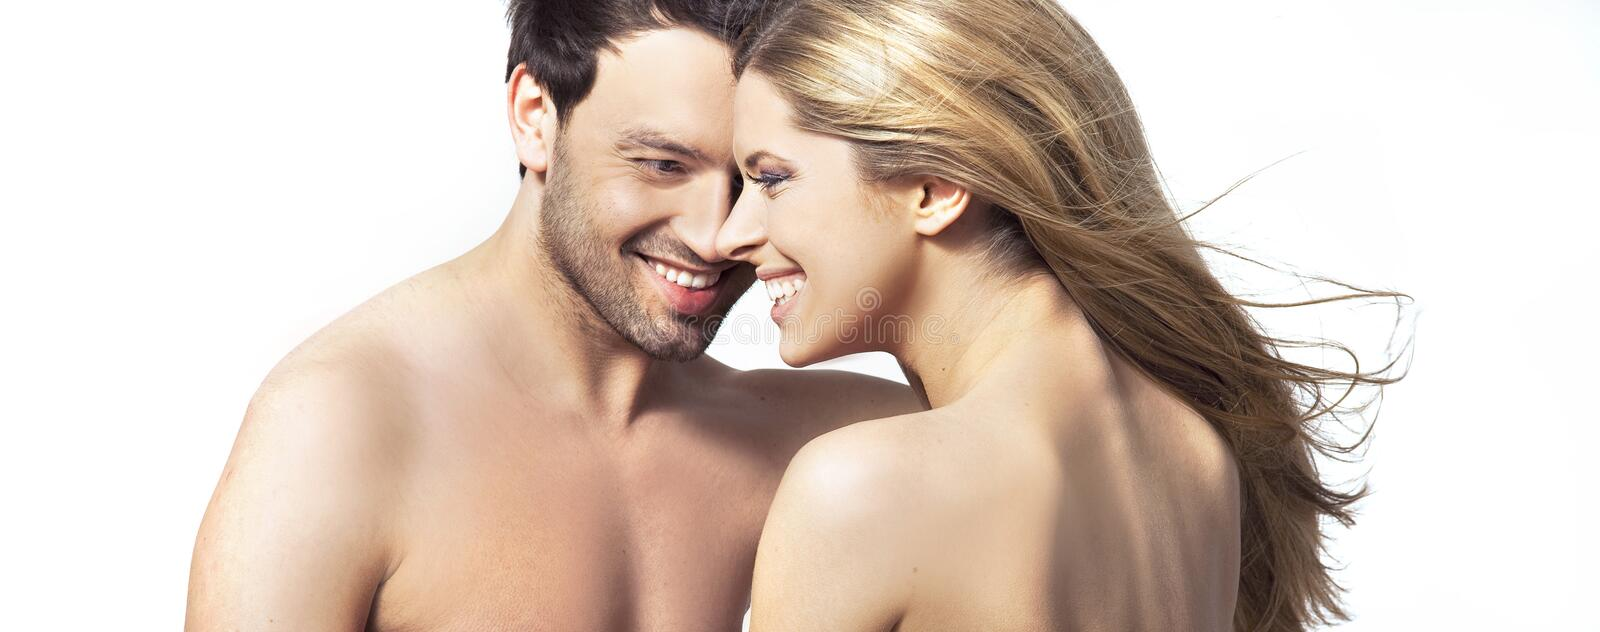 Young woman and man smiling together stock photo